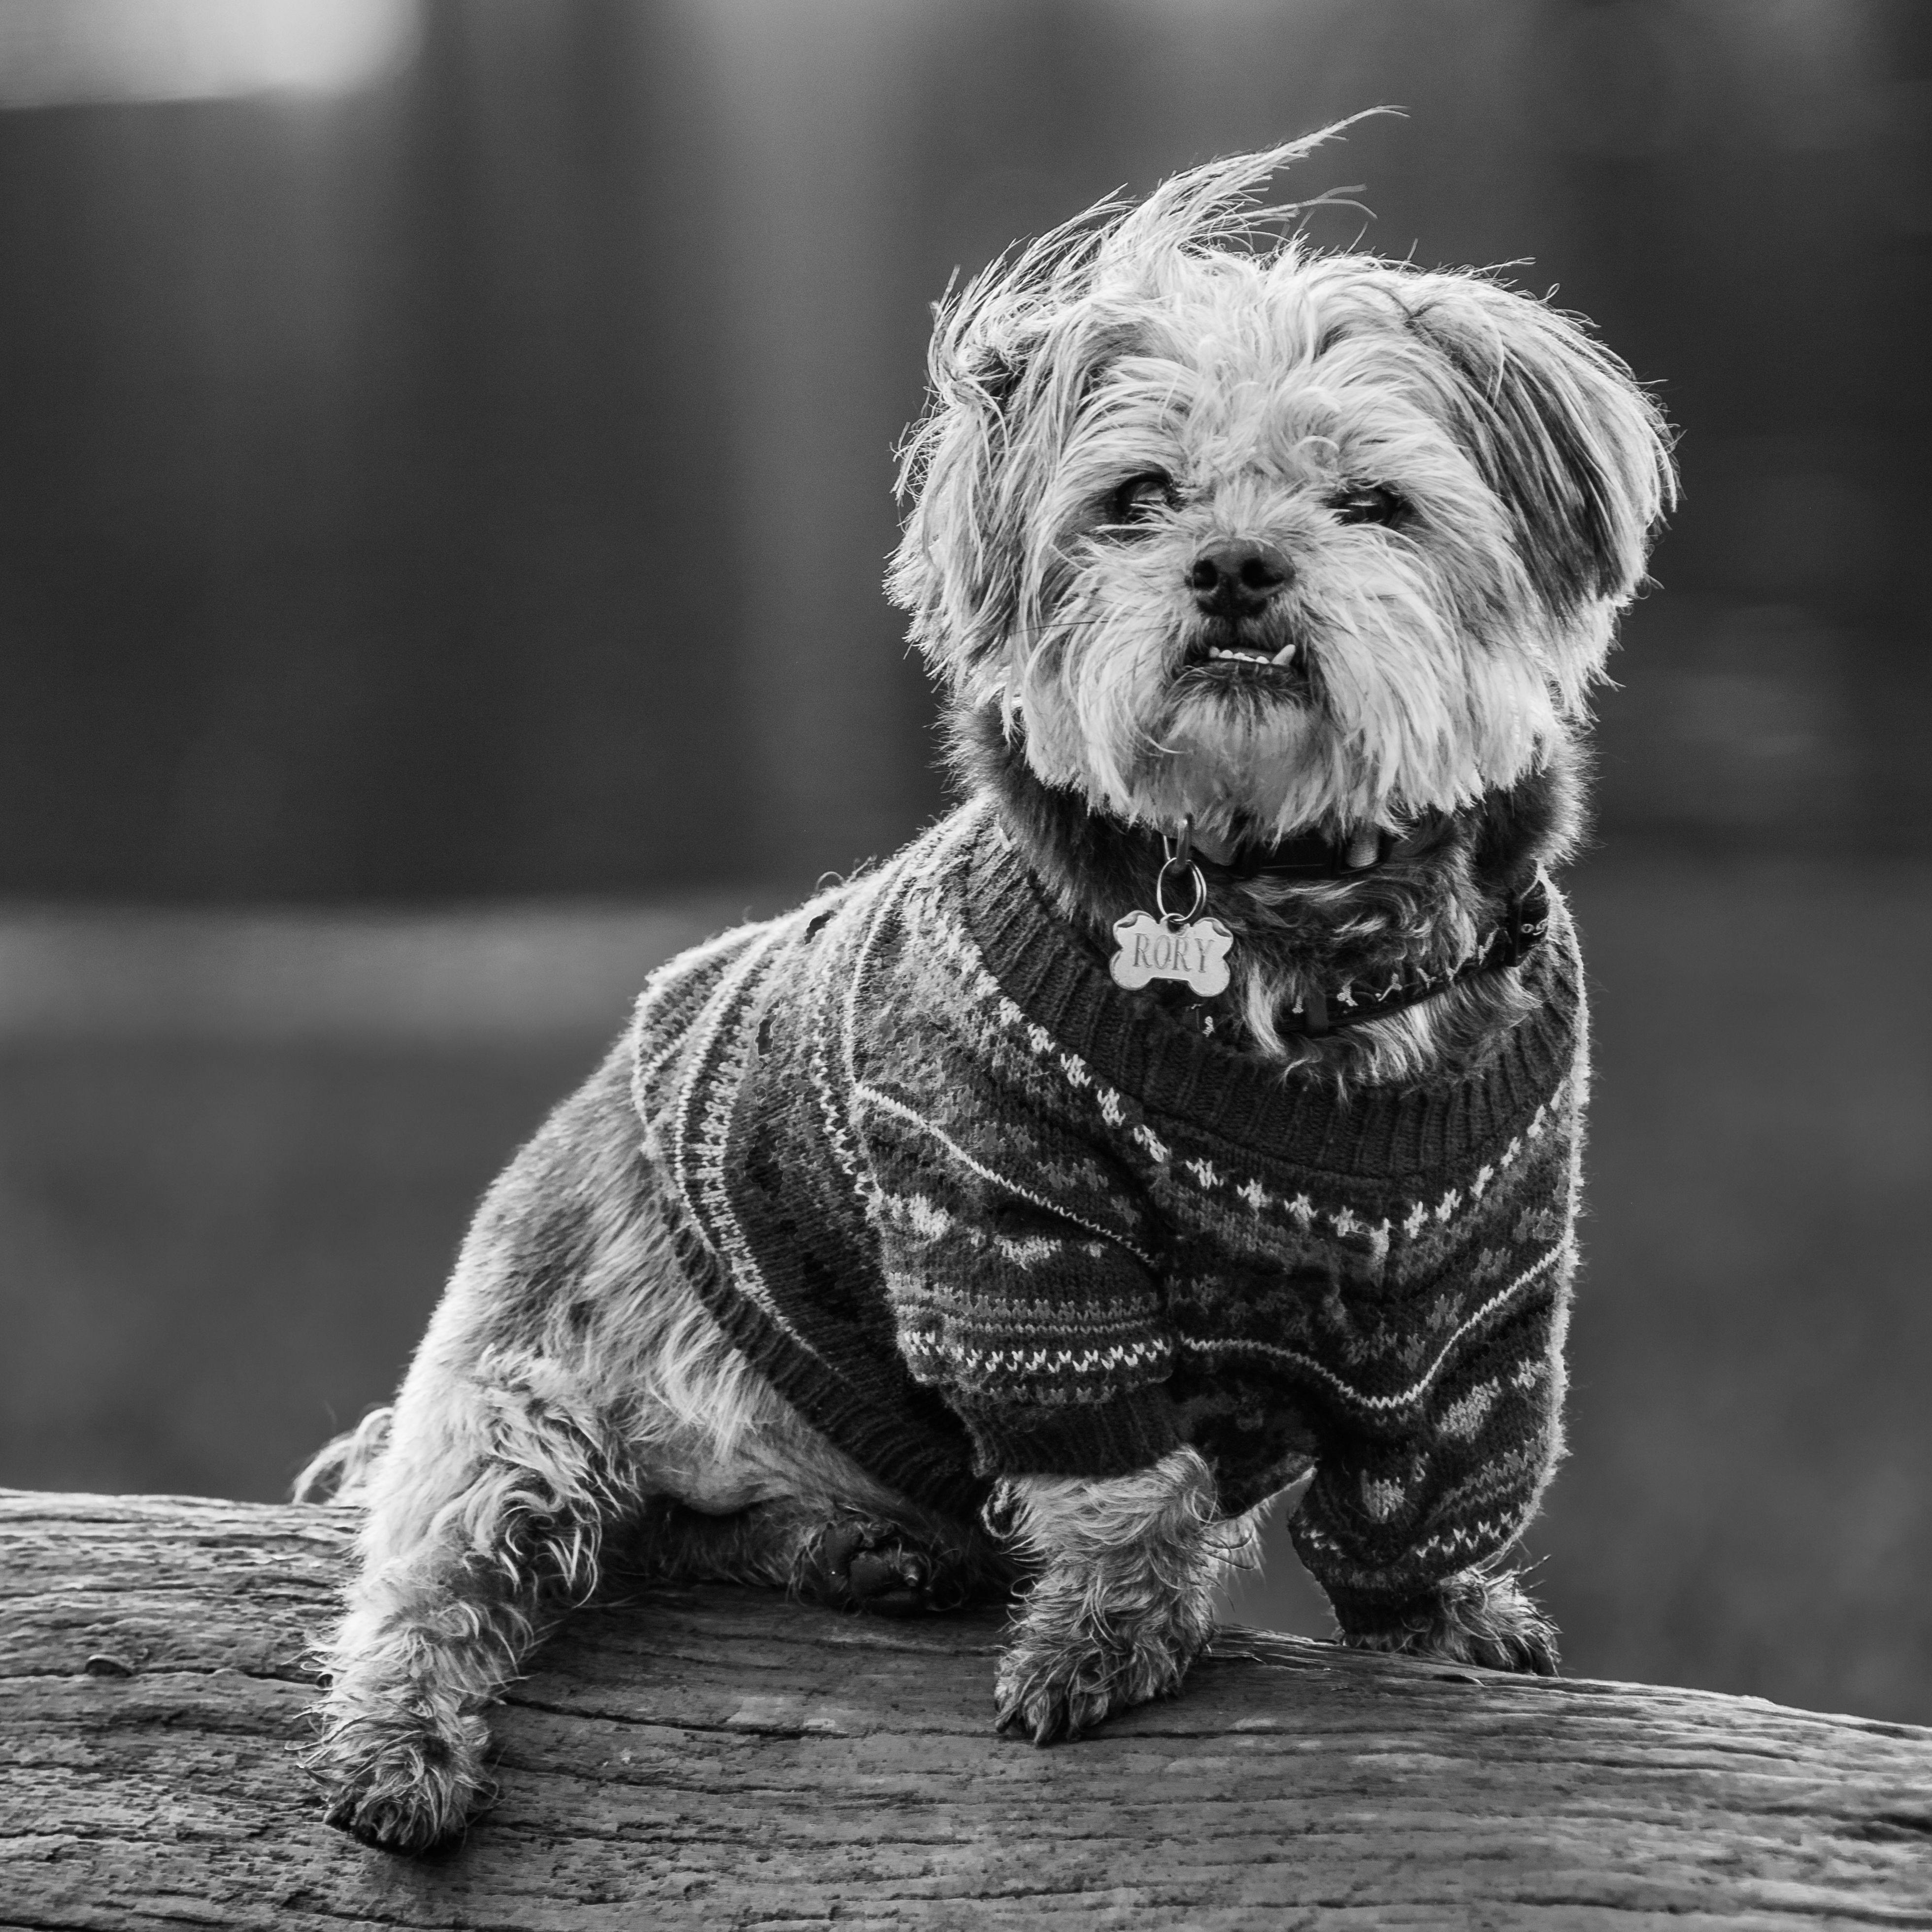 Black And White Pet Portraiture The Dog Is A Malchi Breed White Dog Photography Black And White Dog Pet Portraiture